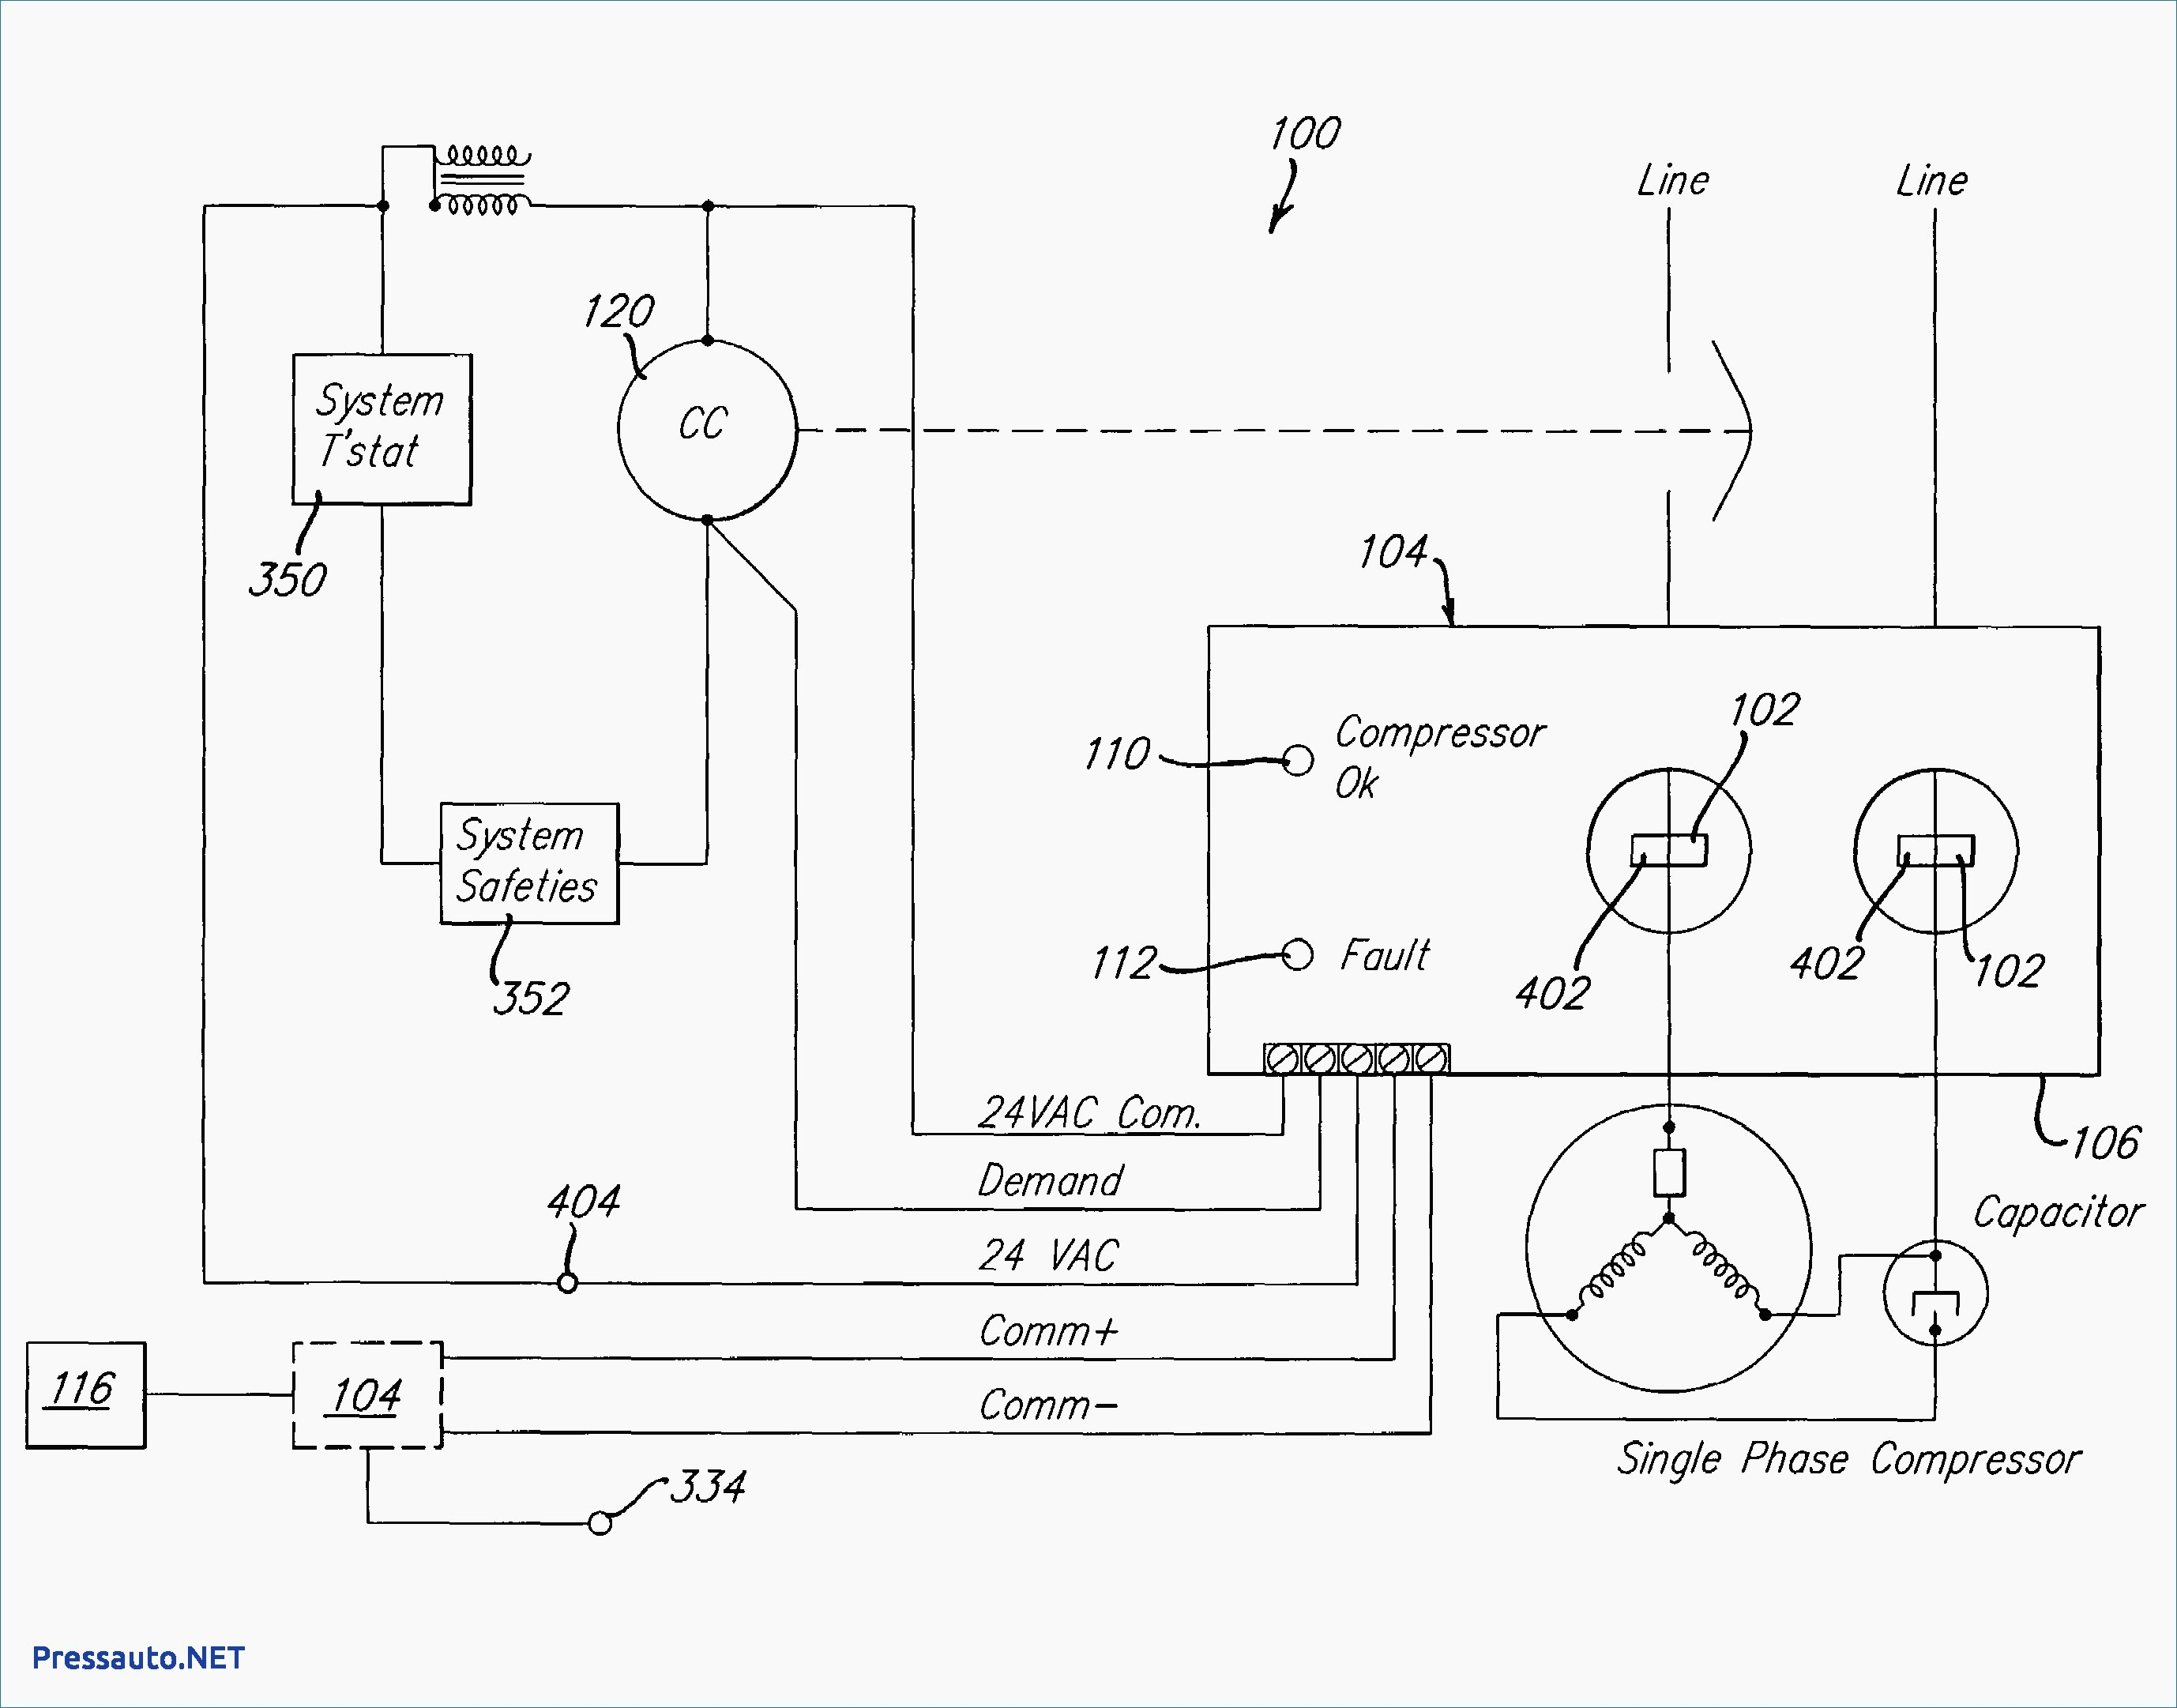 Condensor For Ac Unit Wiring Diagram Wire Center Thermostat Singer Illustration Of U2022 Rh Davisfamilyreunion Us A C Condenser